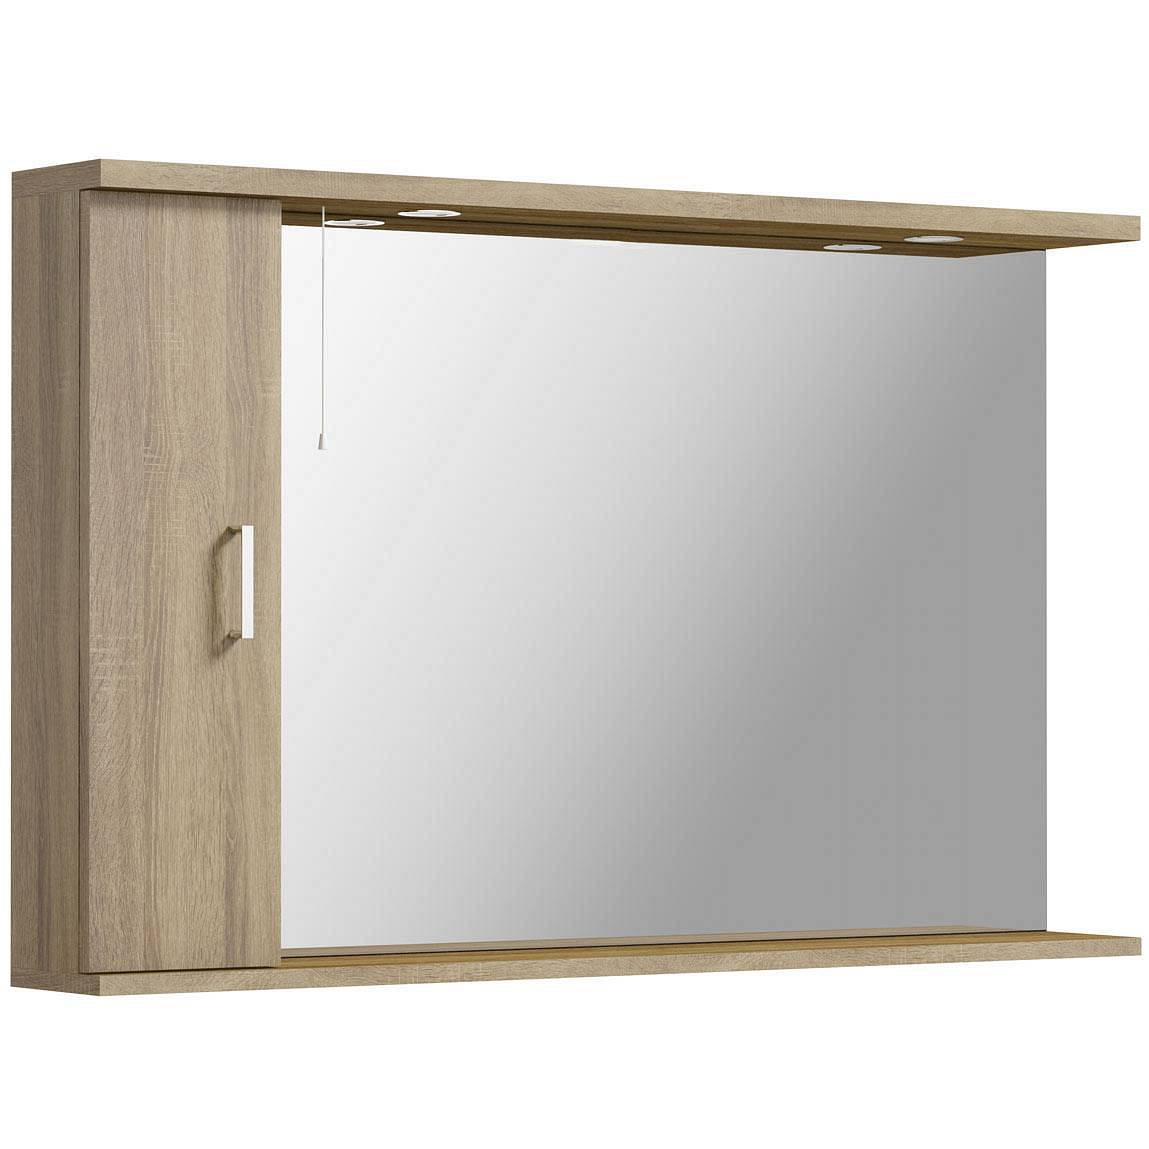 Image of Sienna Oak 120 Mirror with lights